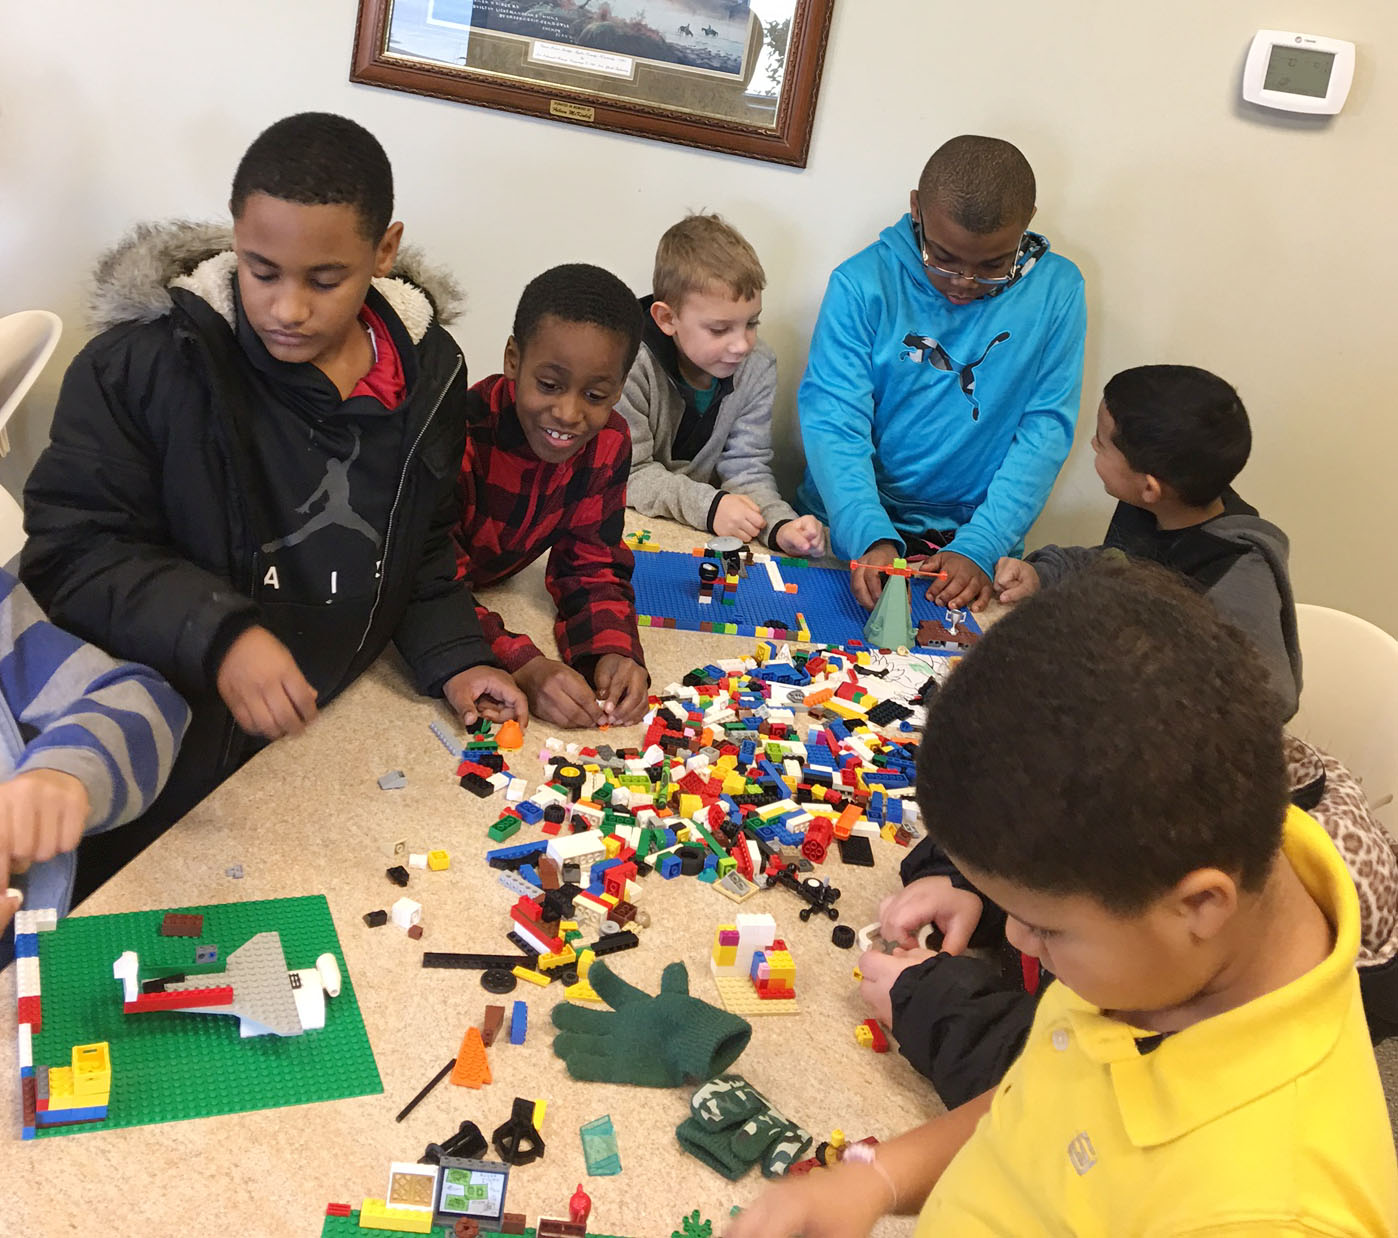 CES Wings Express students build with Legos. From left are third-graders Shaiden Calhoun and John Gholston, first-grader Gabe Prior and third-grader Austin Sloan, with their classmates.